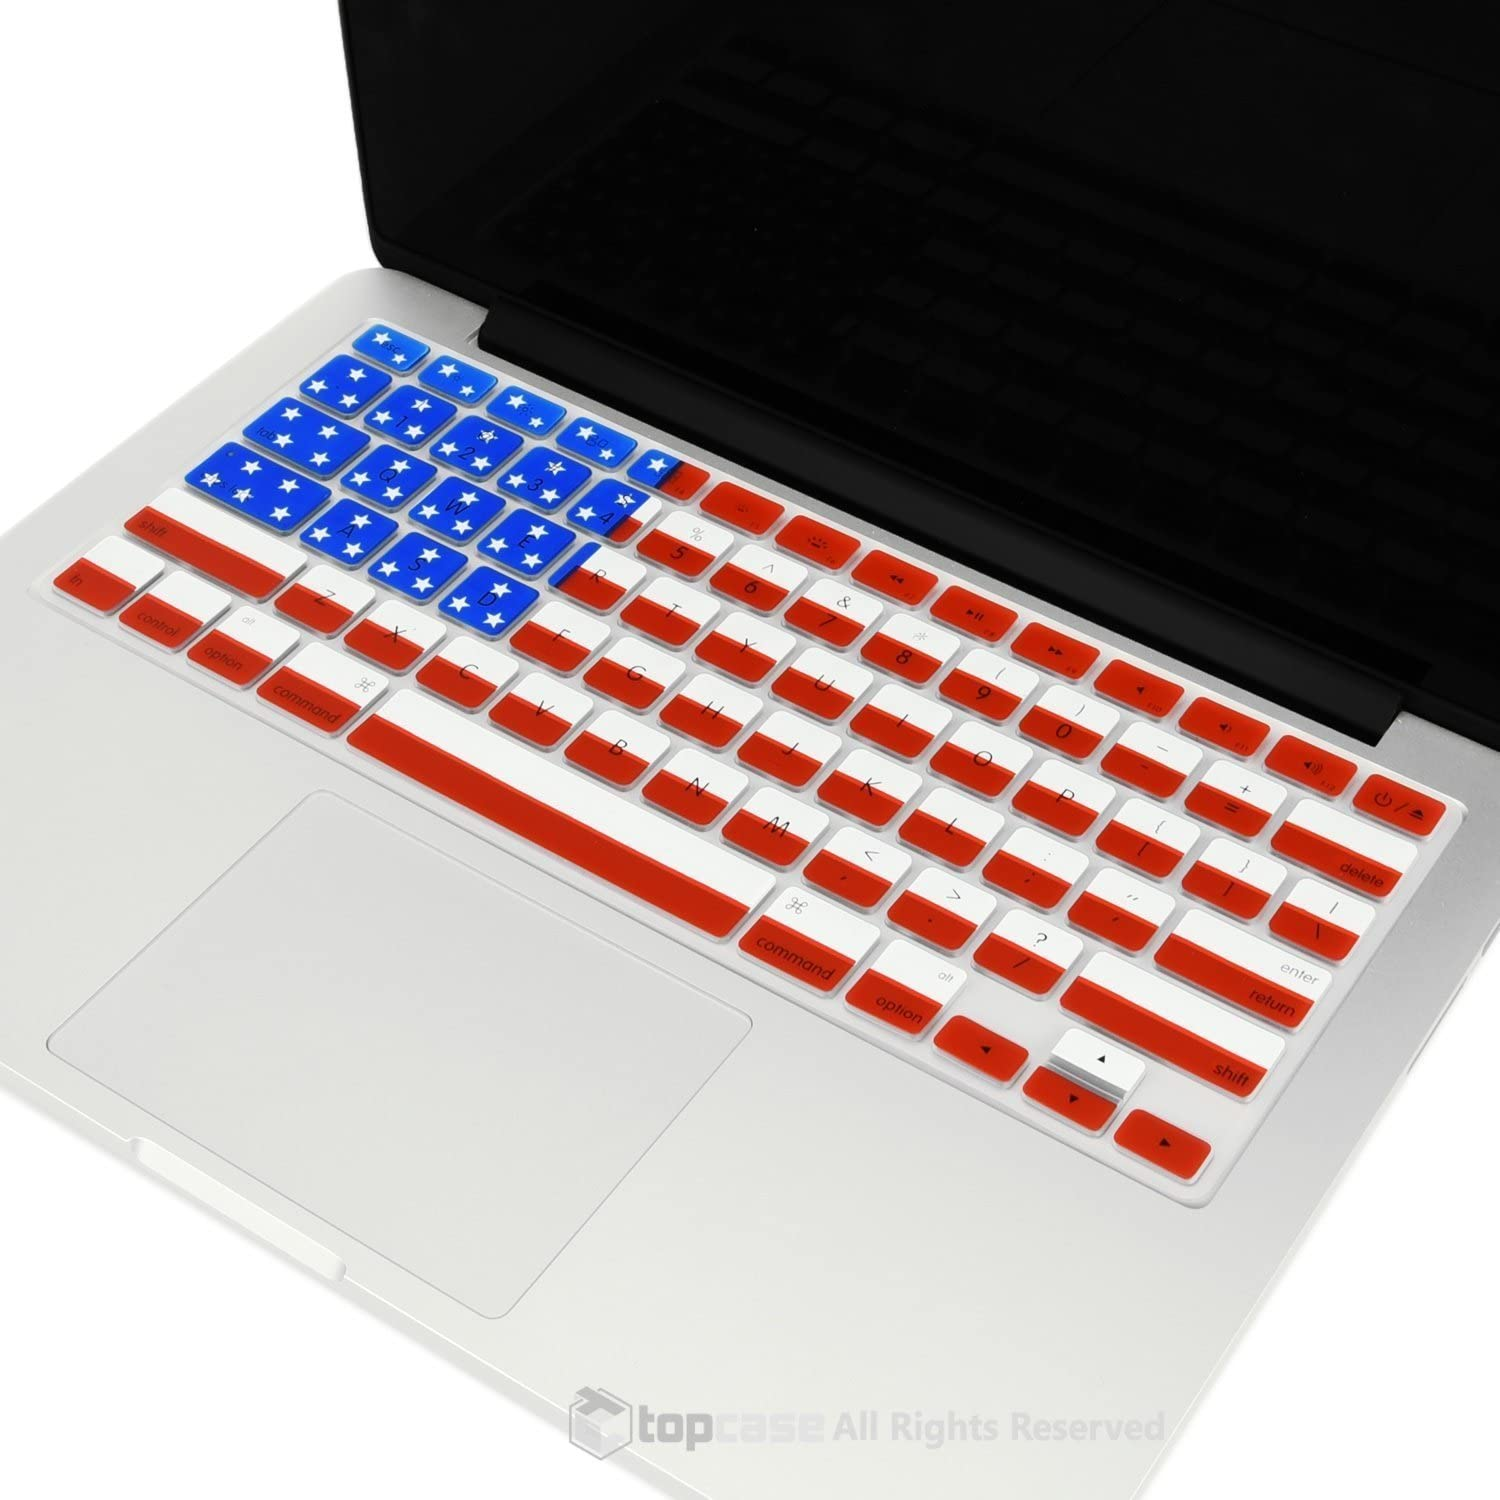 Brilliant Light TOP CASE Ultra Thin Silicone Keyboard Cover Compatible with MacBook 13 Unibody//Old Generation MacBook Pro 13 15 17// MacBook Air 13//Wireless Keyboard